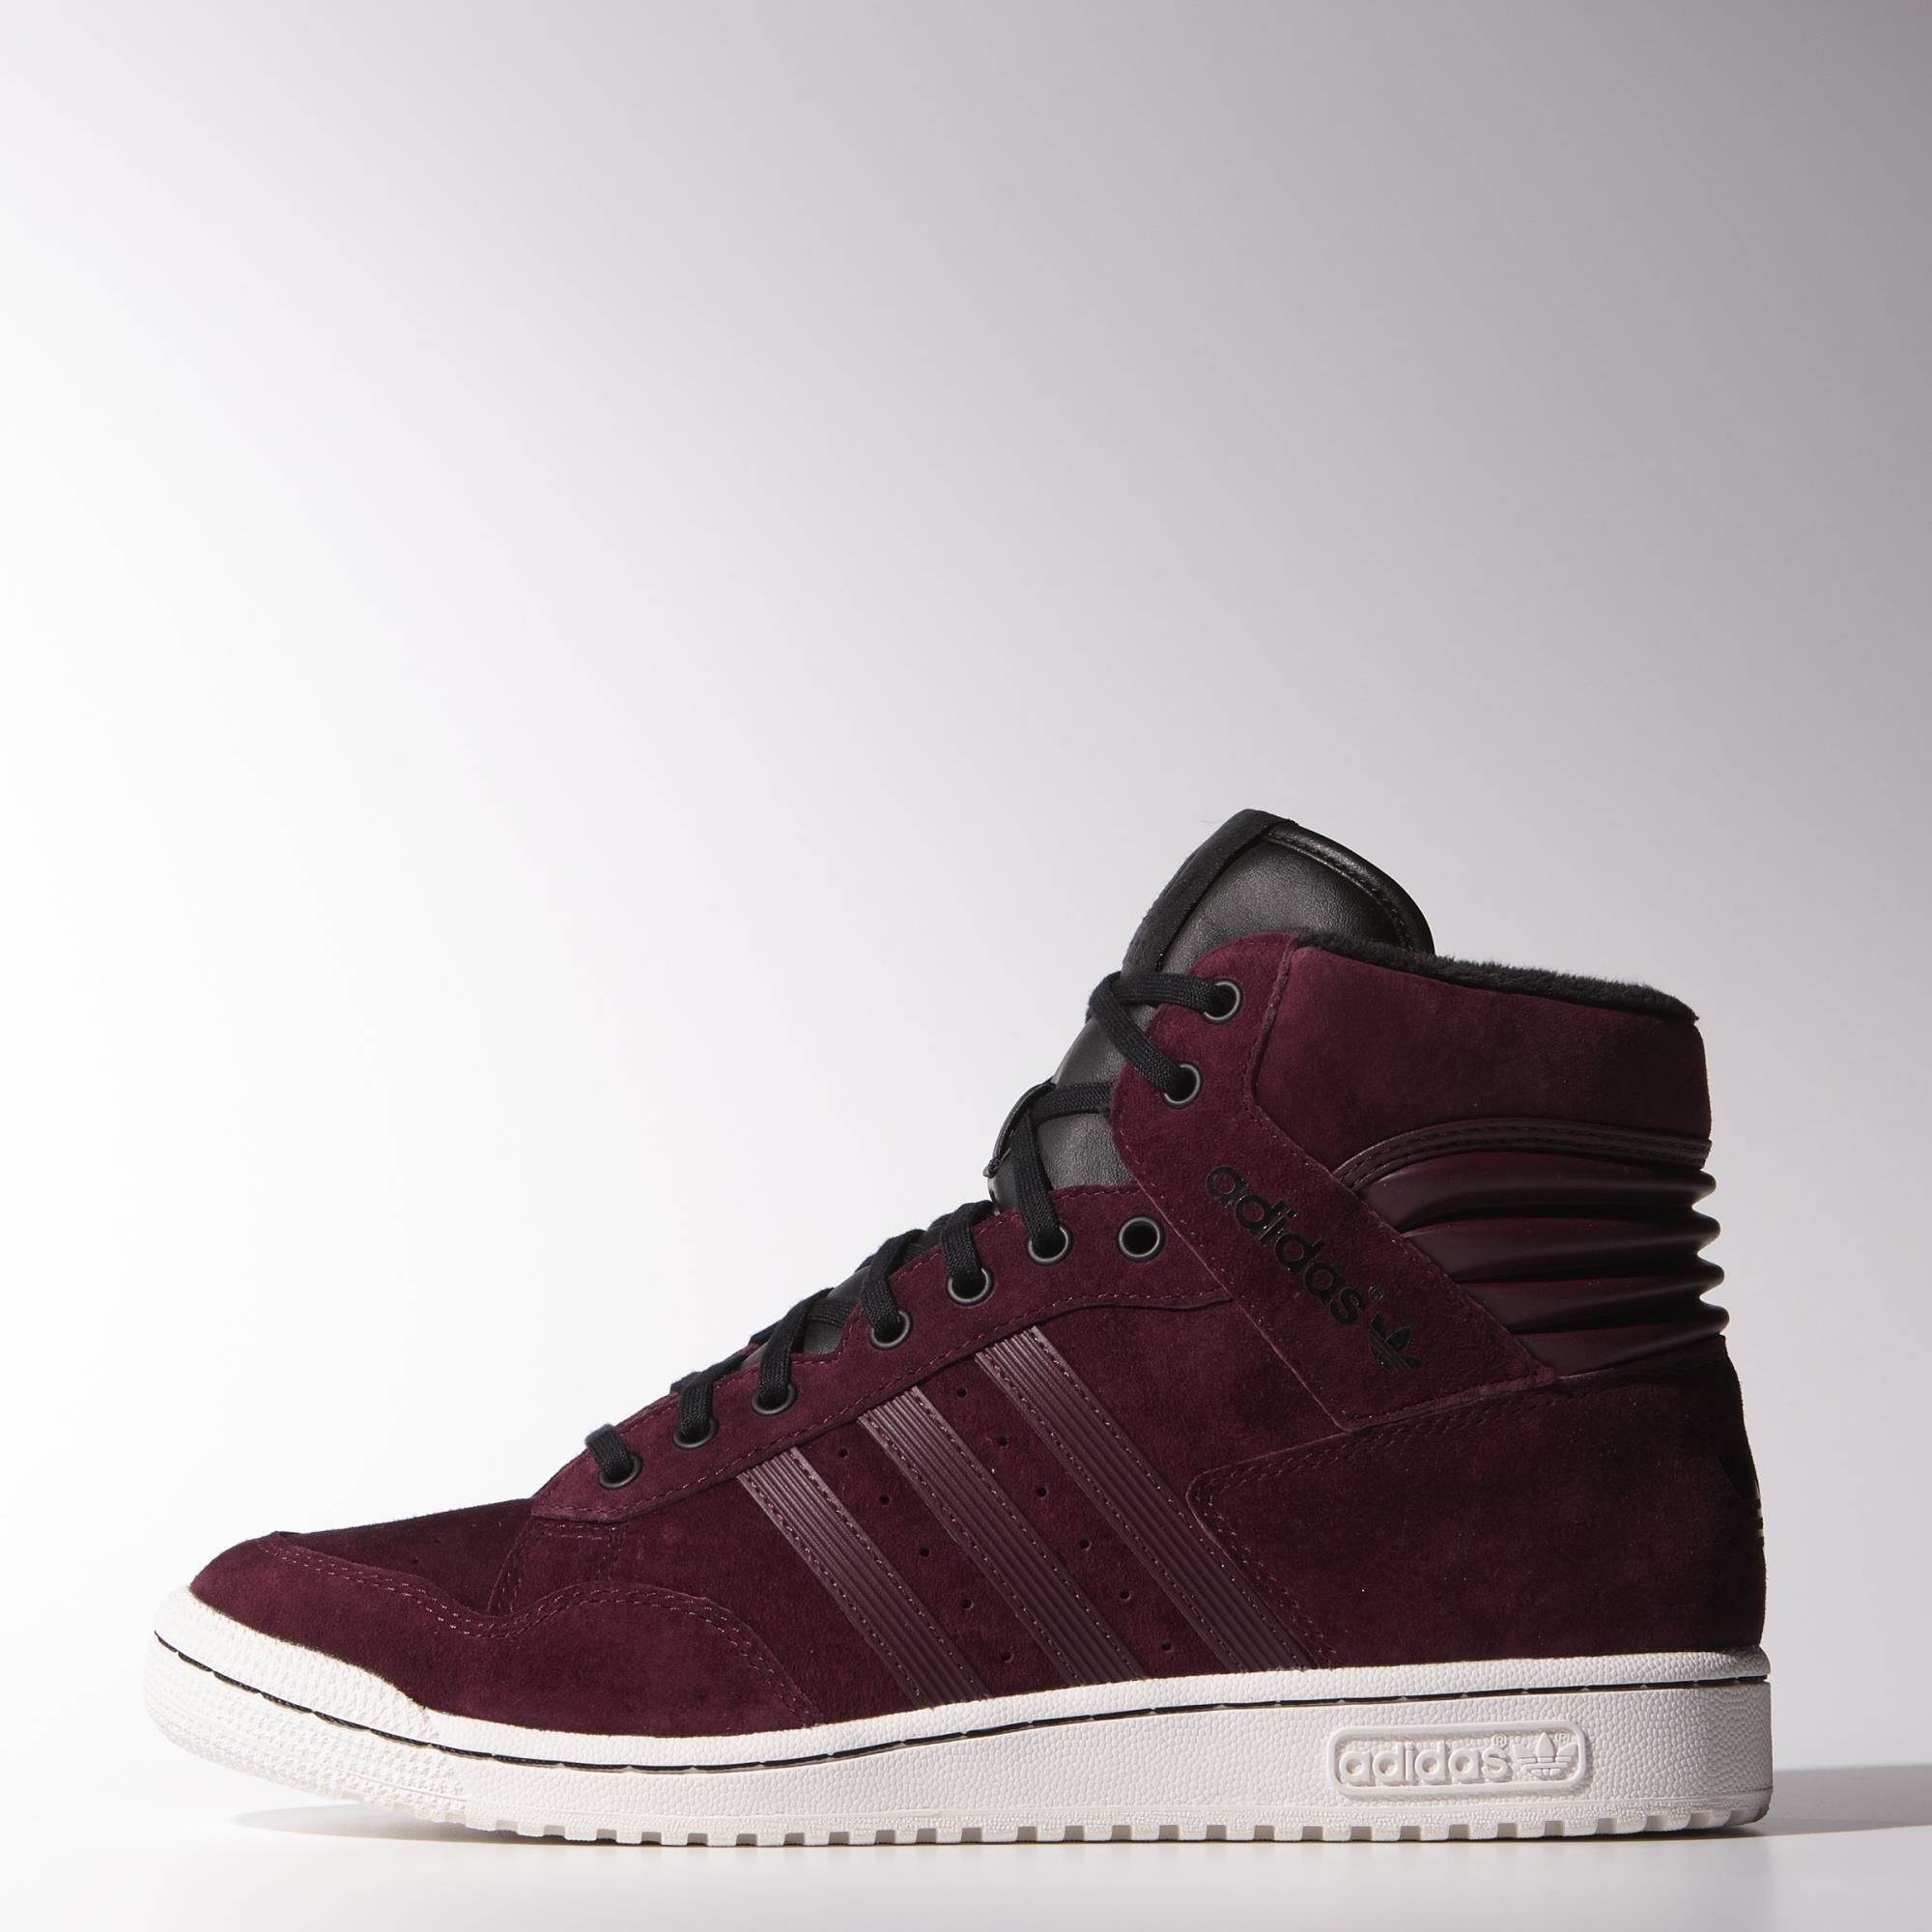 Adidas Pro Conference Hi Shoes Sneakers Shoes Adidas